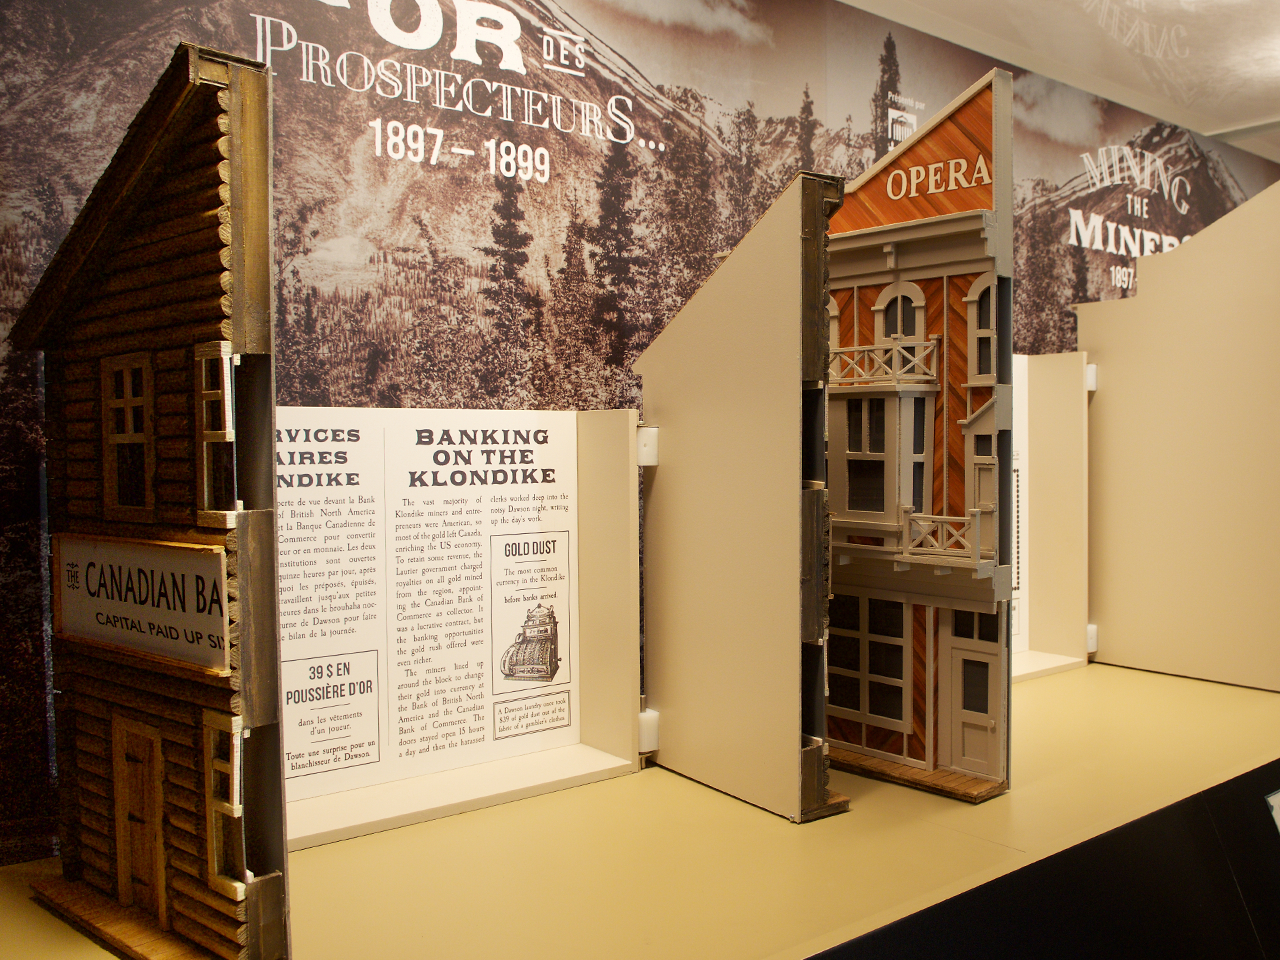 model buildings with the fronts open to reveal museum text